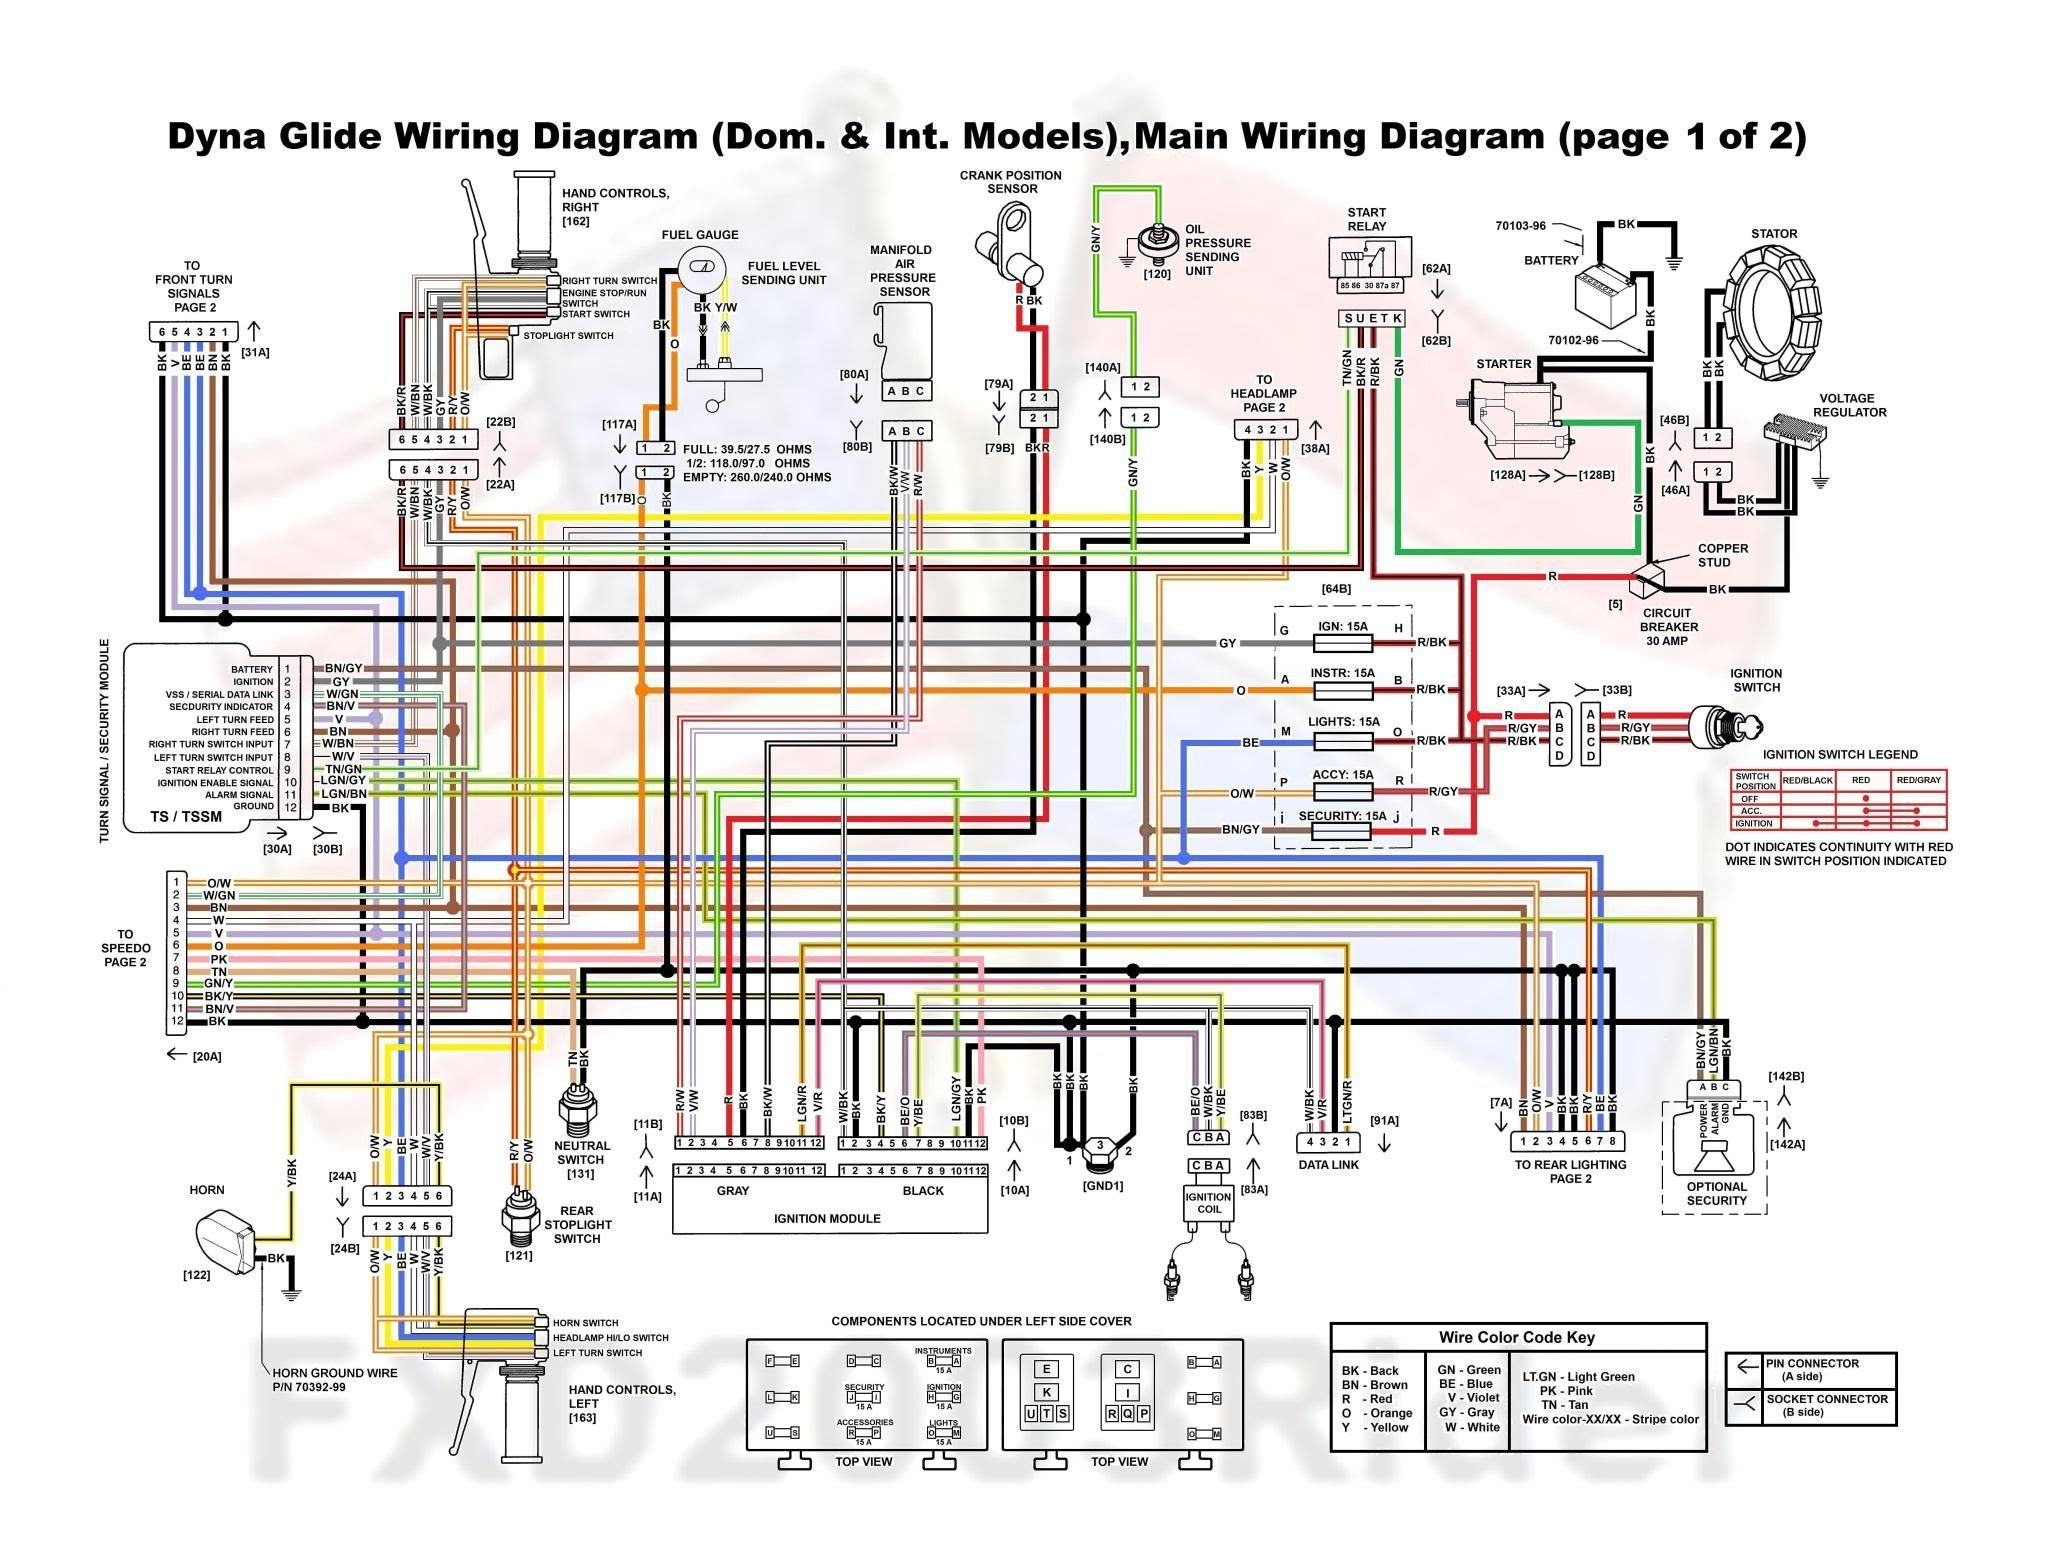 basic wiring diagram for harley davidson | wiringdiagram.org | harley  davidson ultra classic, motorcycle wiring, diagram  pinterest